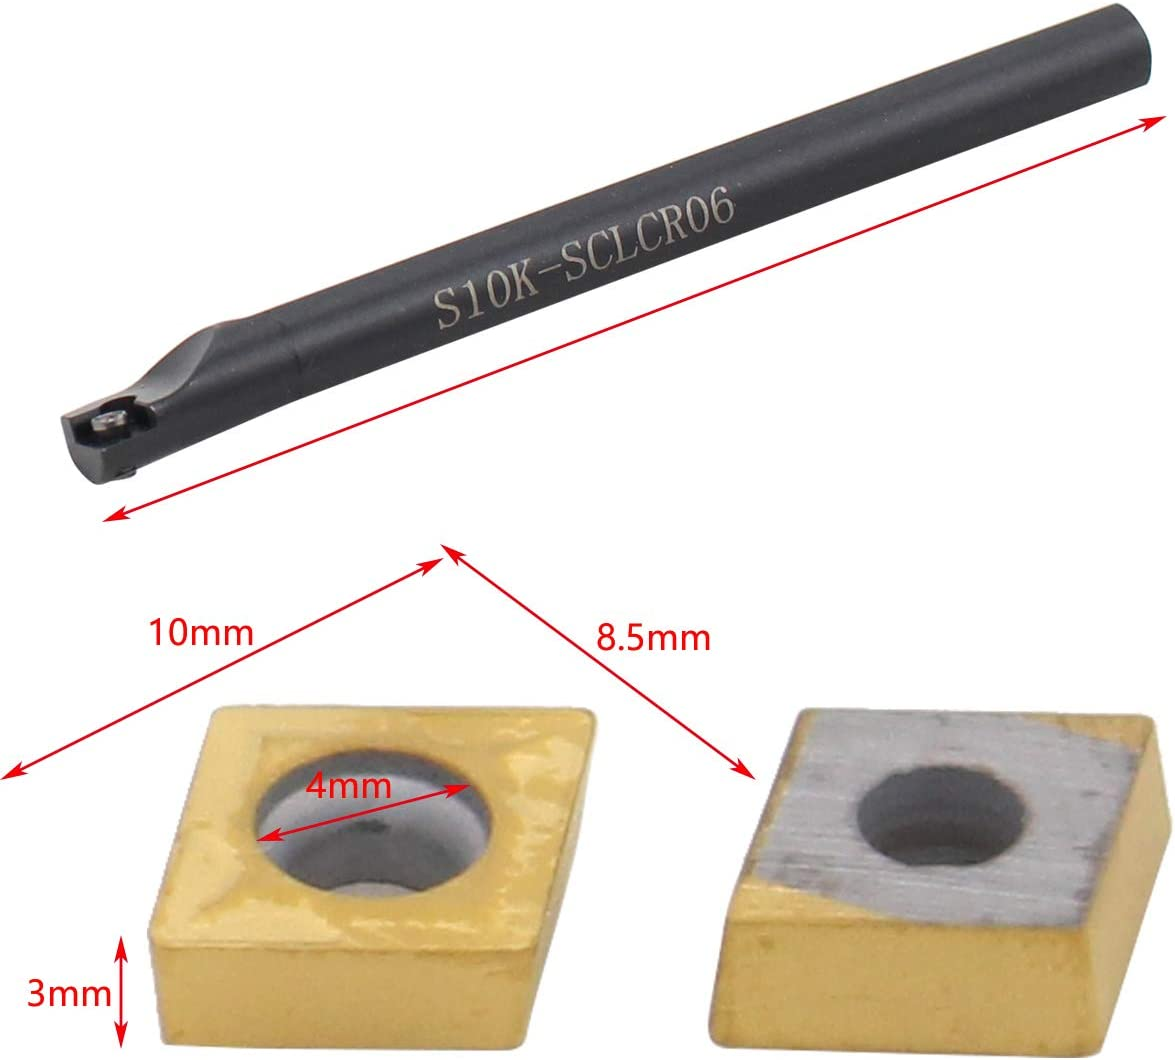 XtremeAmazing S10K-SCLCR06 S08K-SCLCR06 S07K-SCLCR06 S06K-SCLCR06 Holder Boring Bar Turning Tool with 10Pcs CCMT060204-HM Carbide Inserts and T8 Wrench Kit